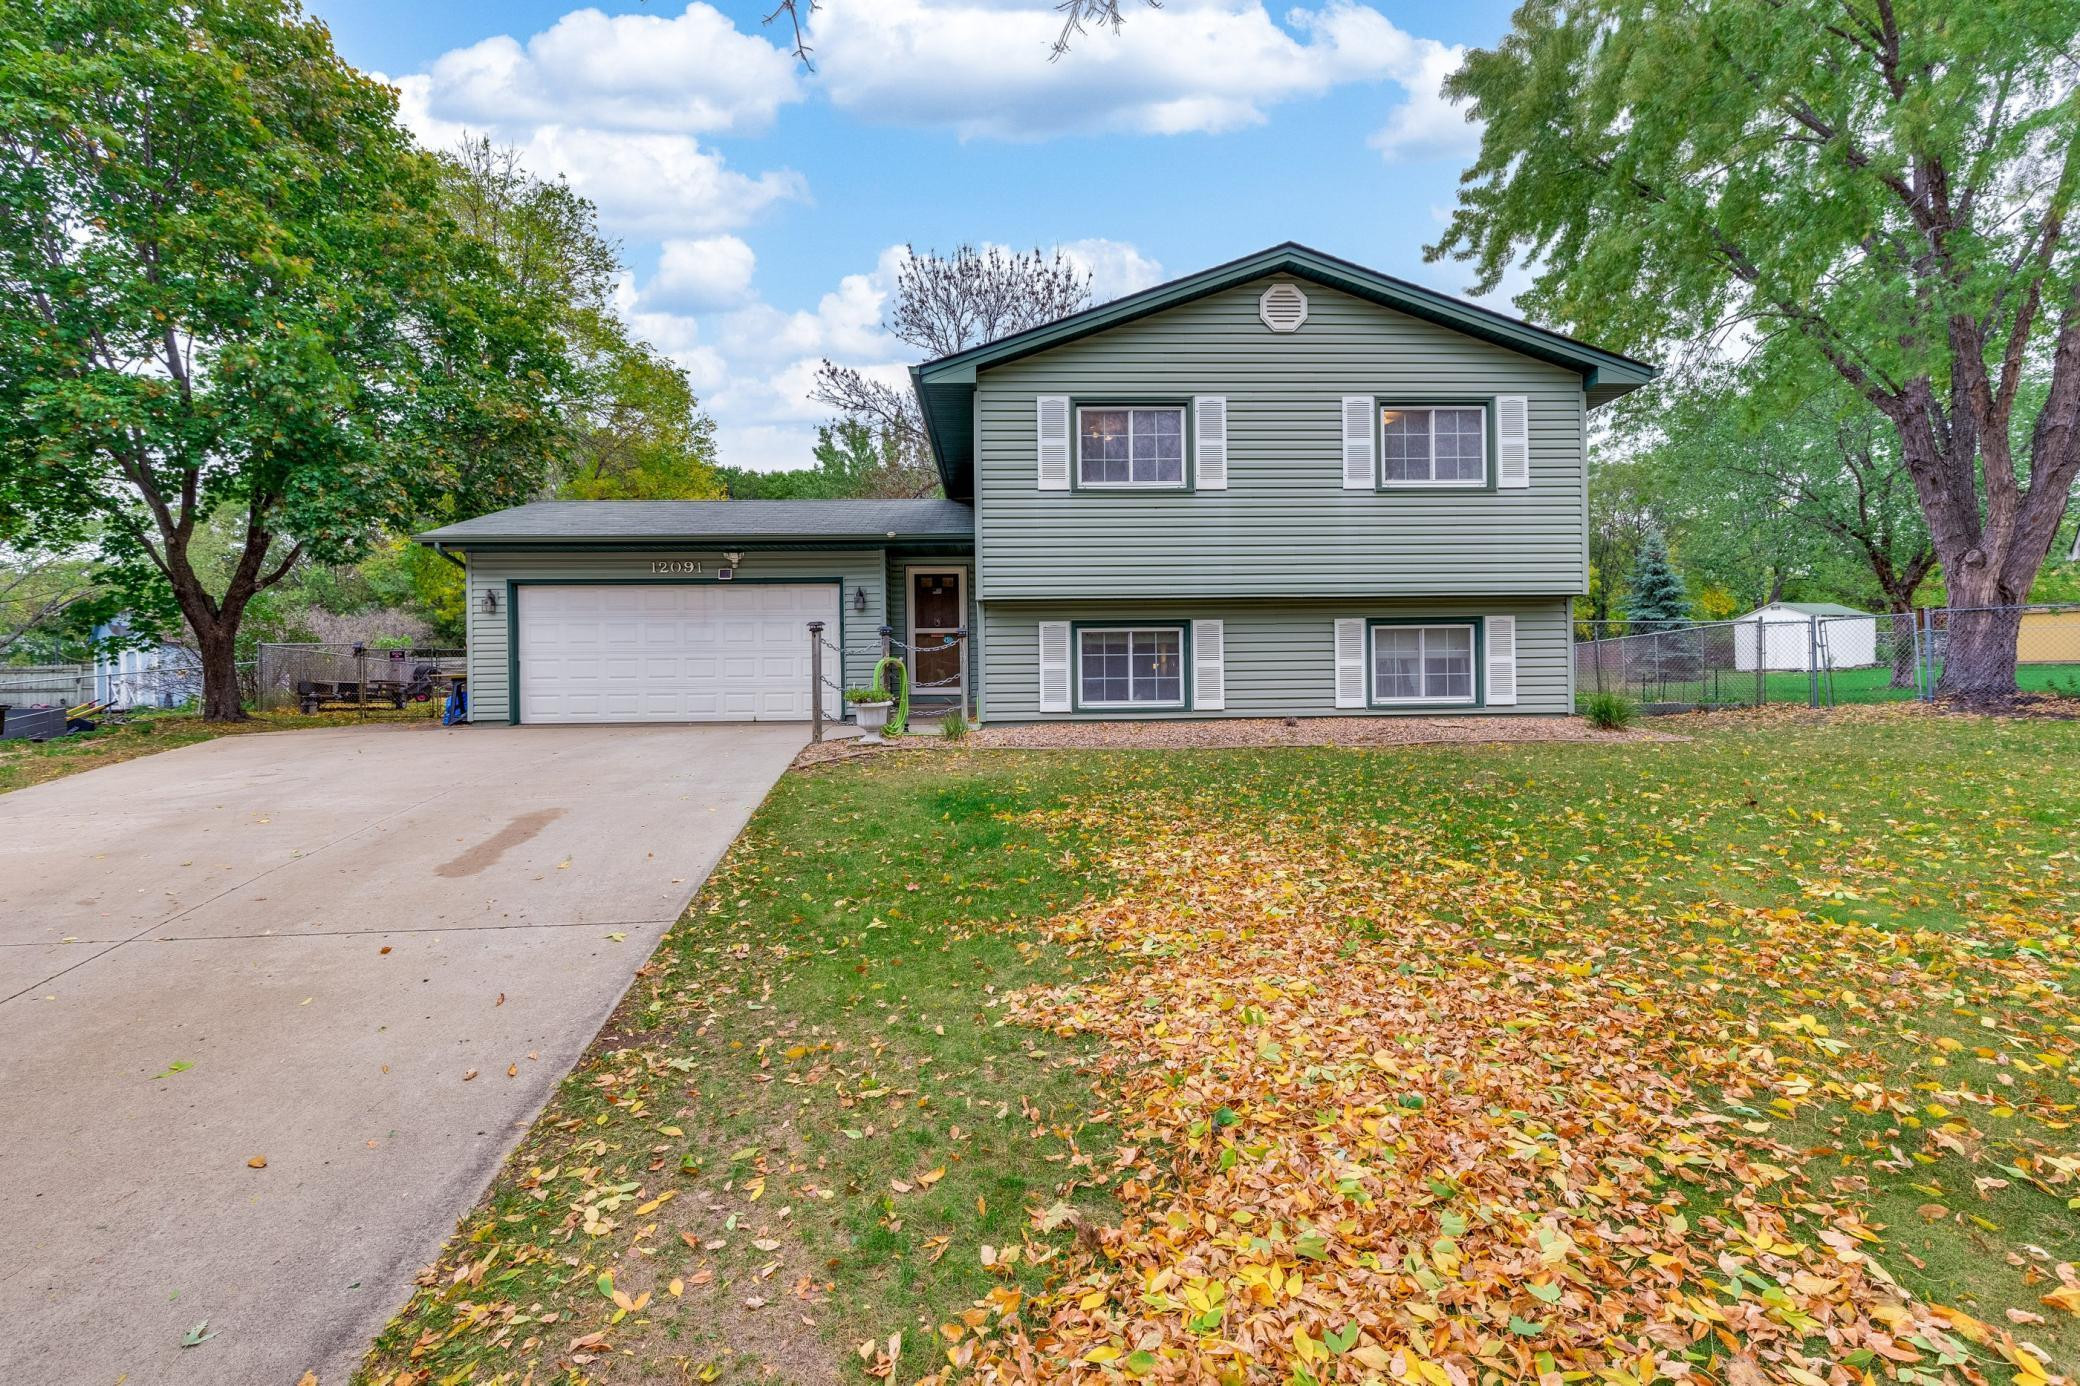 Welcome to 12091 Flamingo St in Coon Rapids!